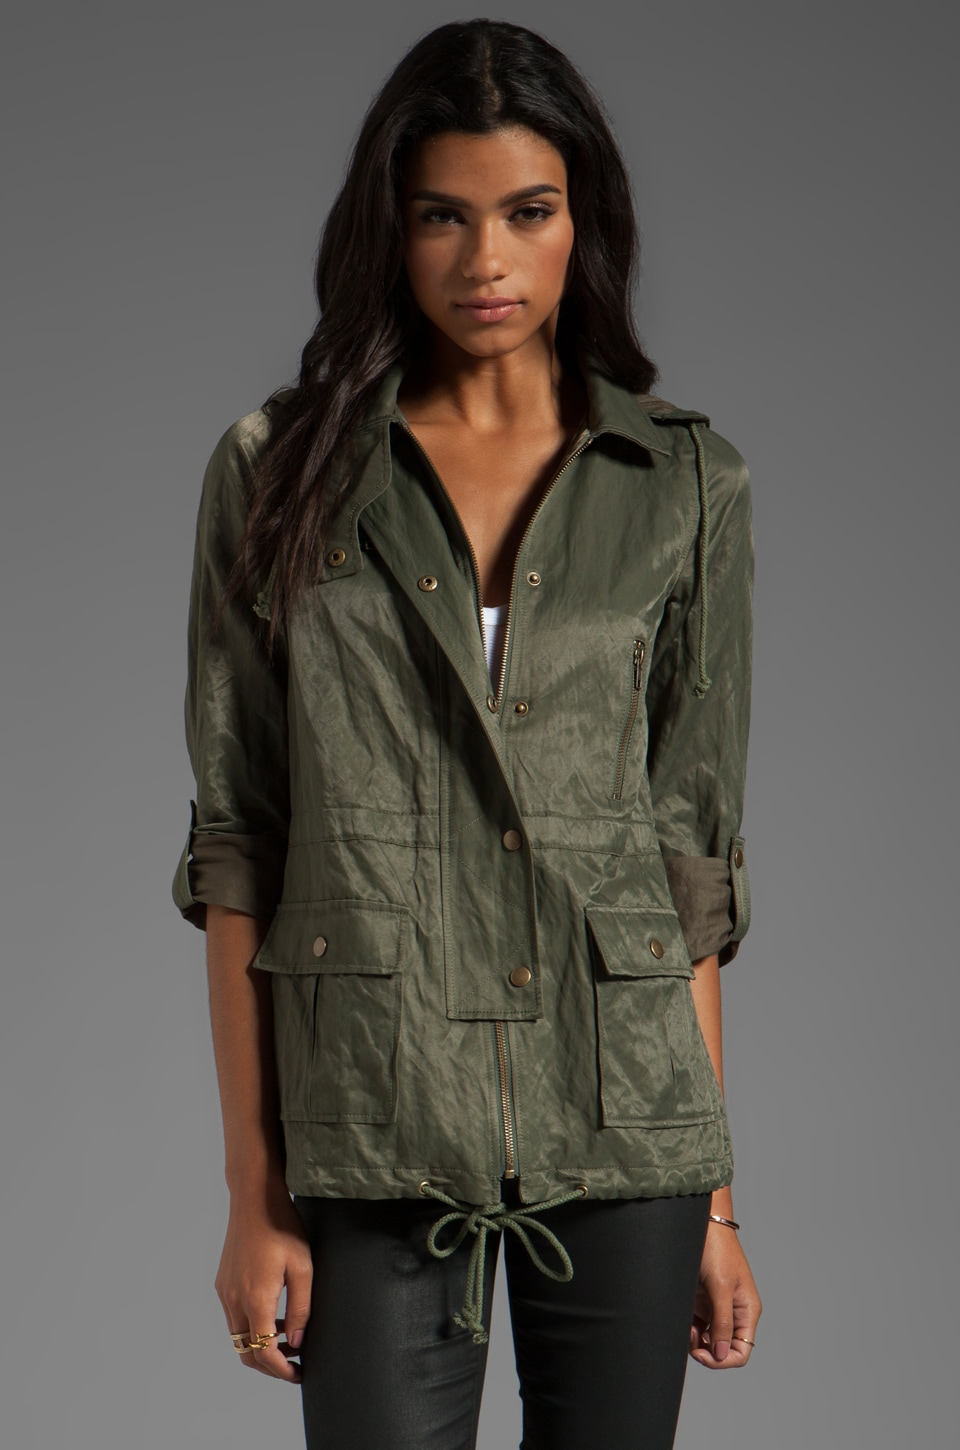 Joie Nylon Barker Jacket in Fatigue